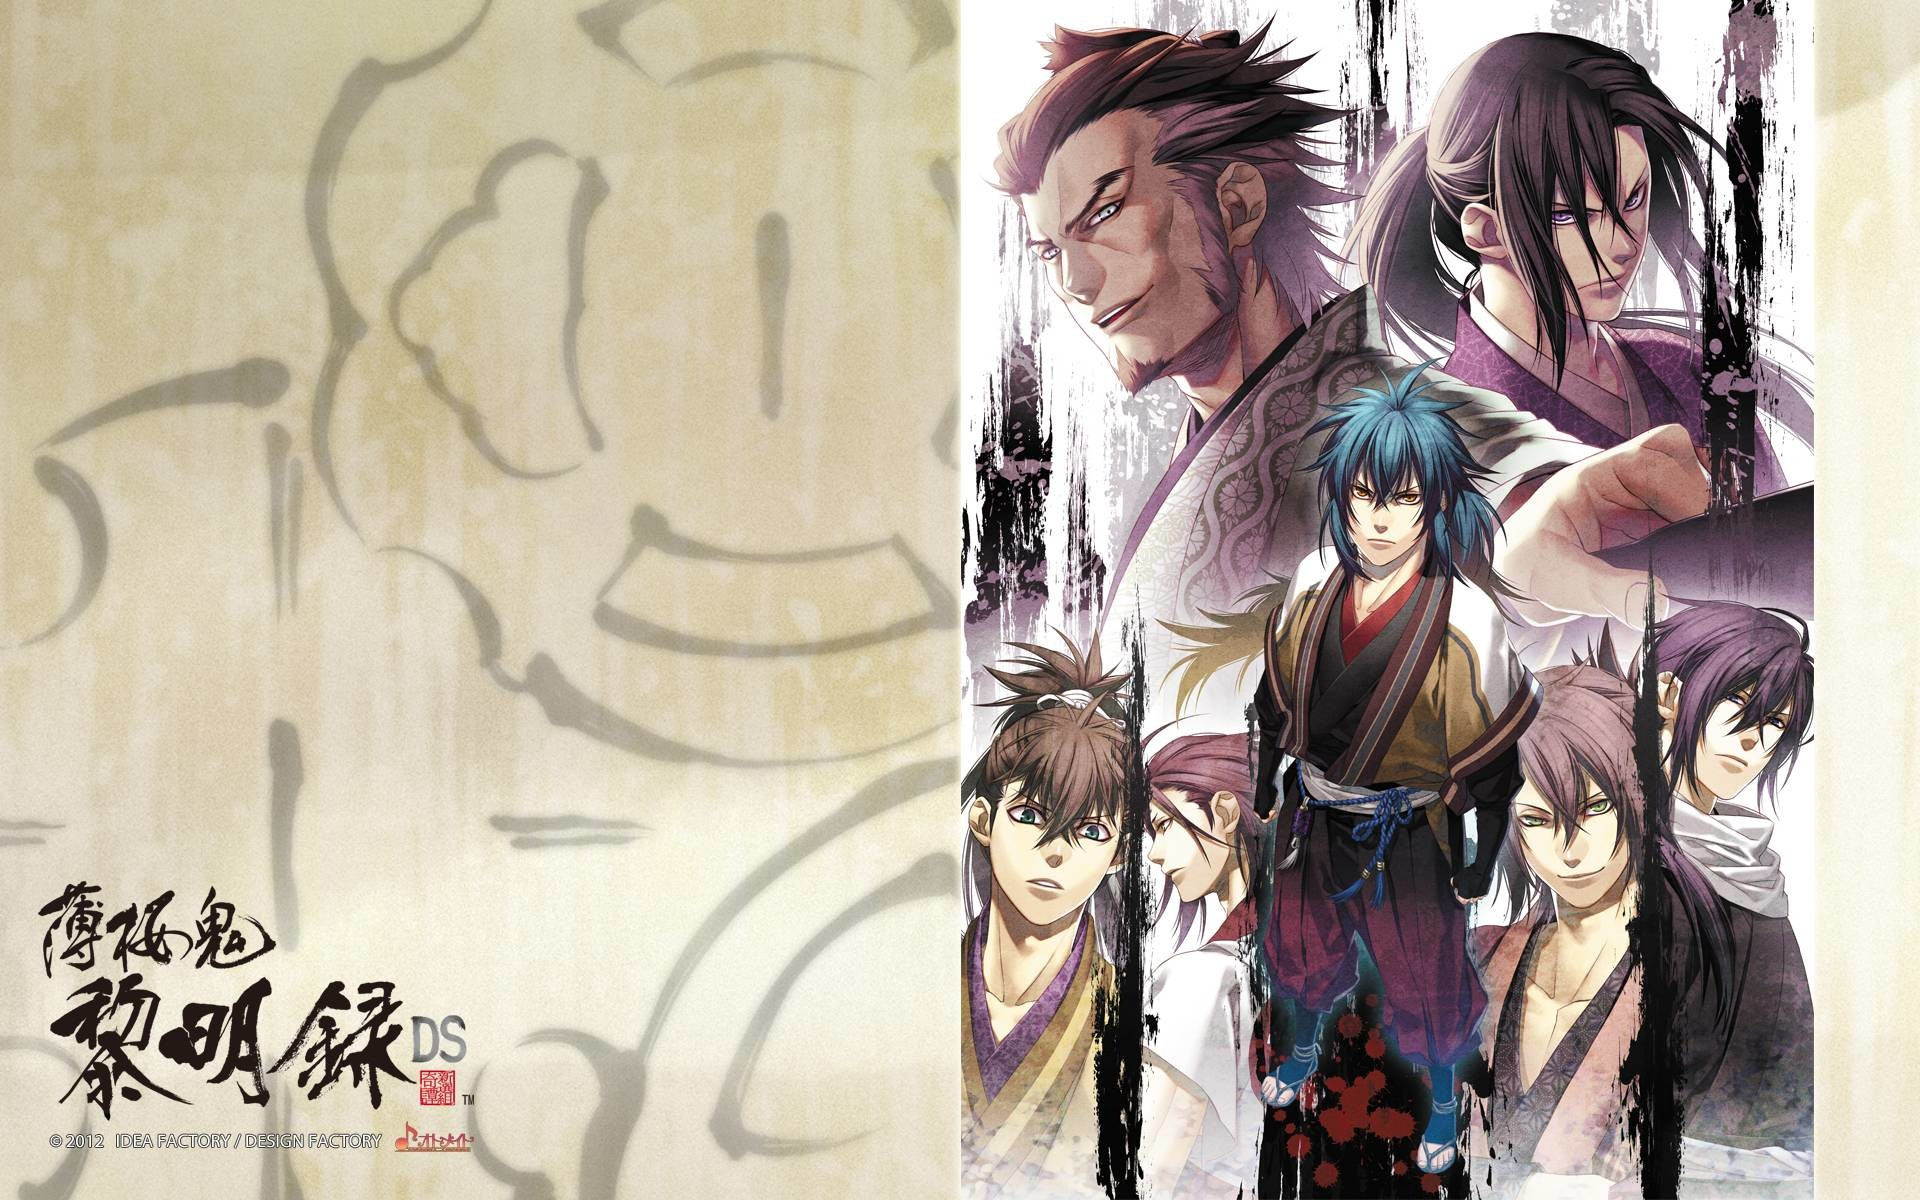 Res: 1920x1200, Hakuouki Shinsengumi Kitan Computer Wallpapers, Desktop .